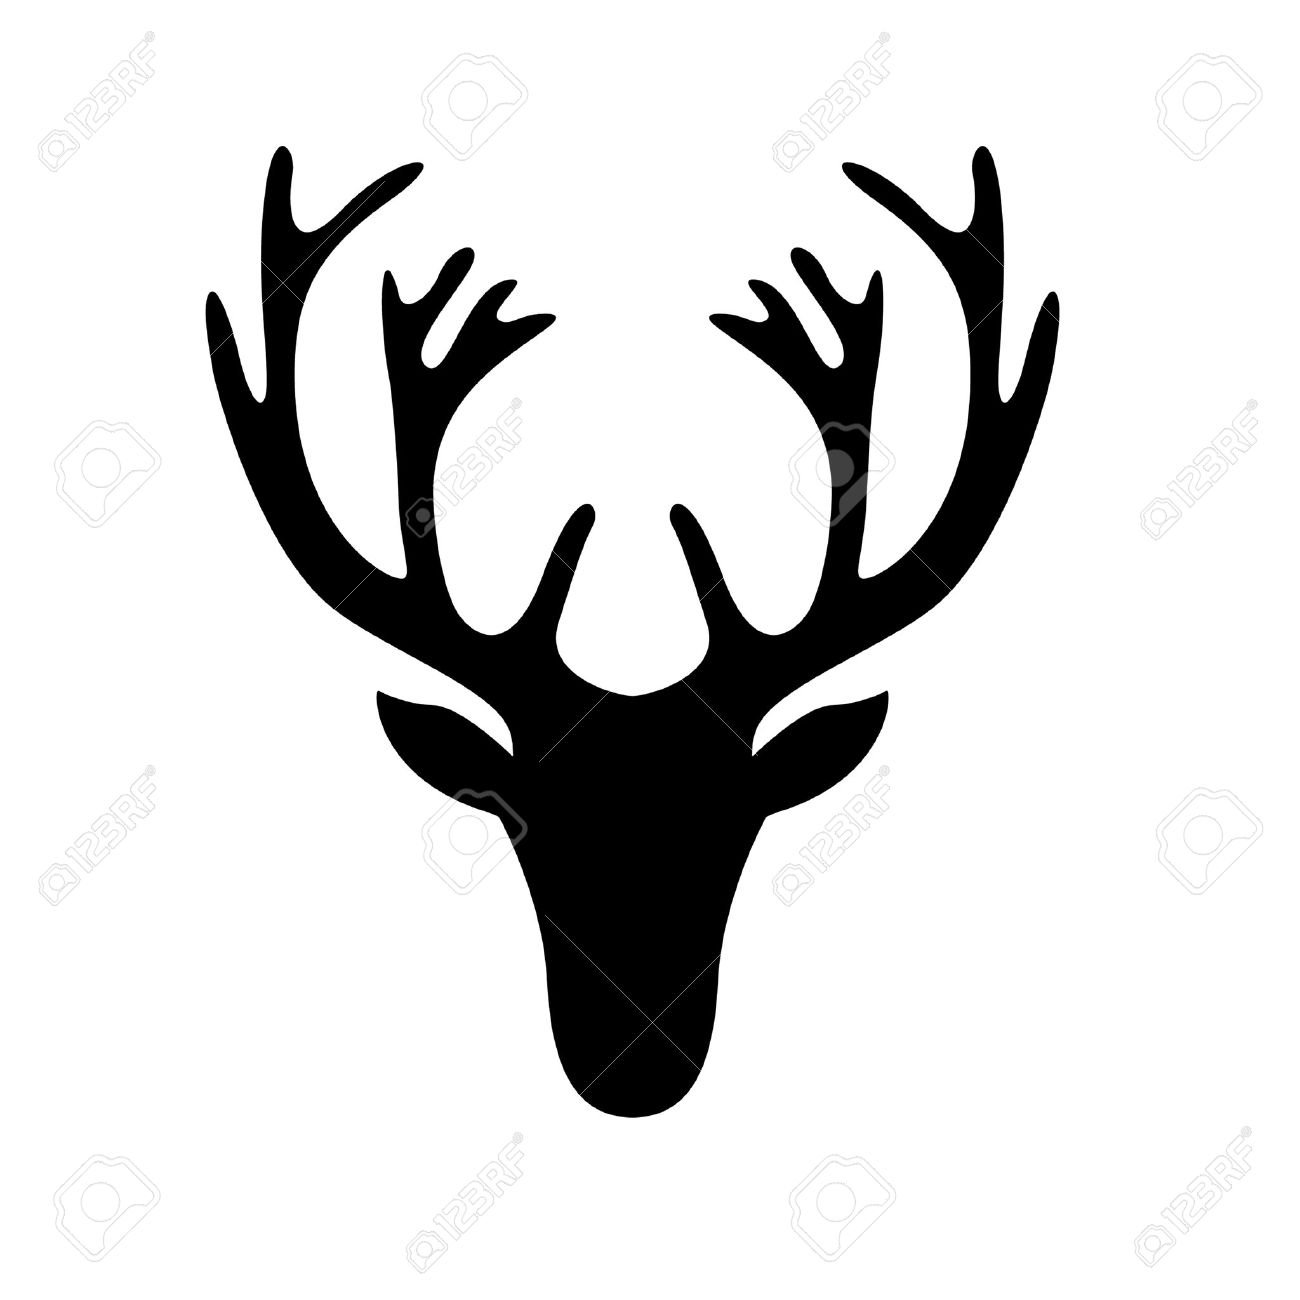 moose stock vector illustration and royalty free moose clipart - moose illustration of a deer head silhouette isolated on white illustration